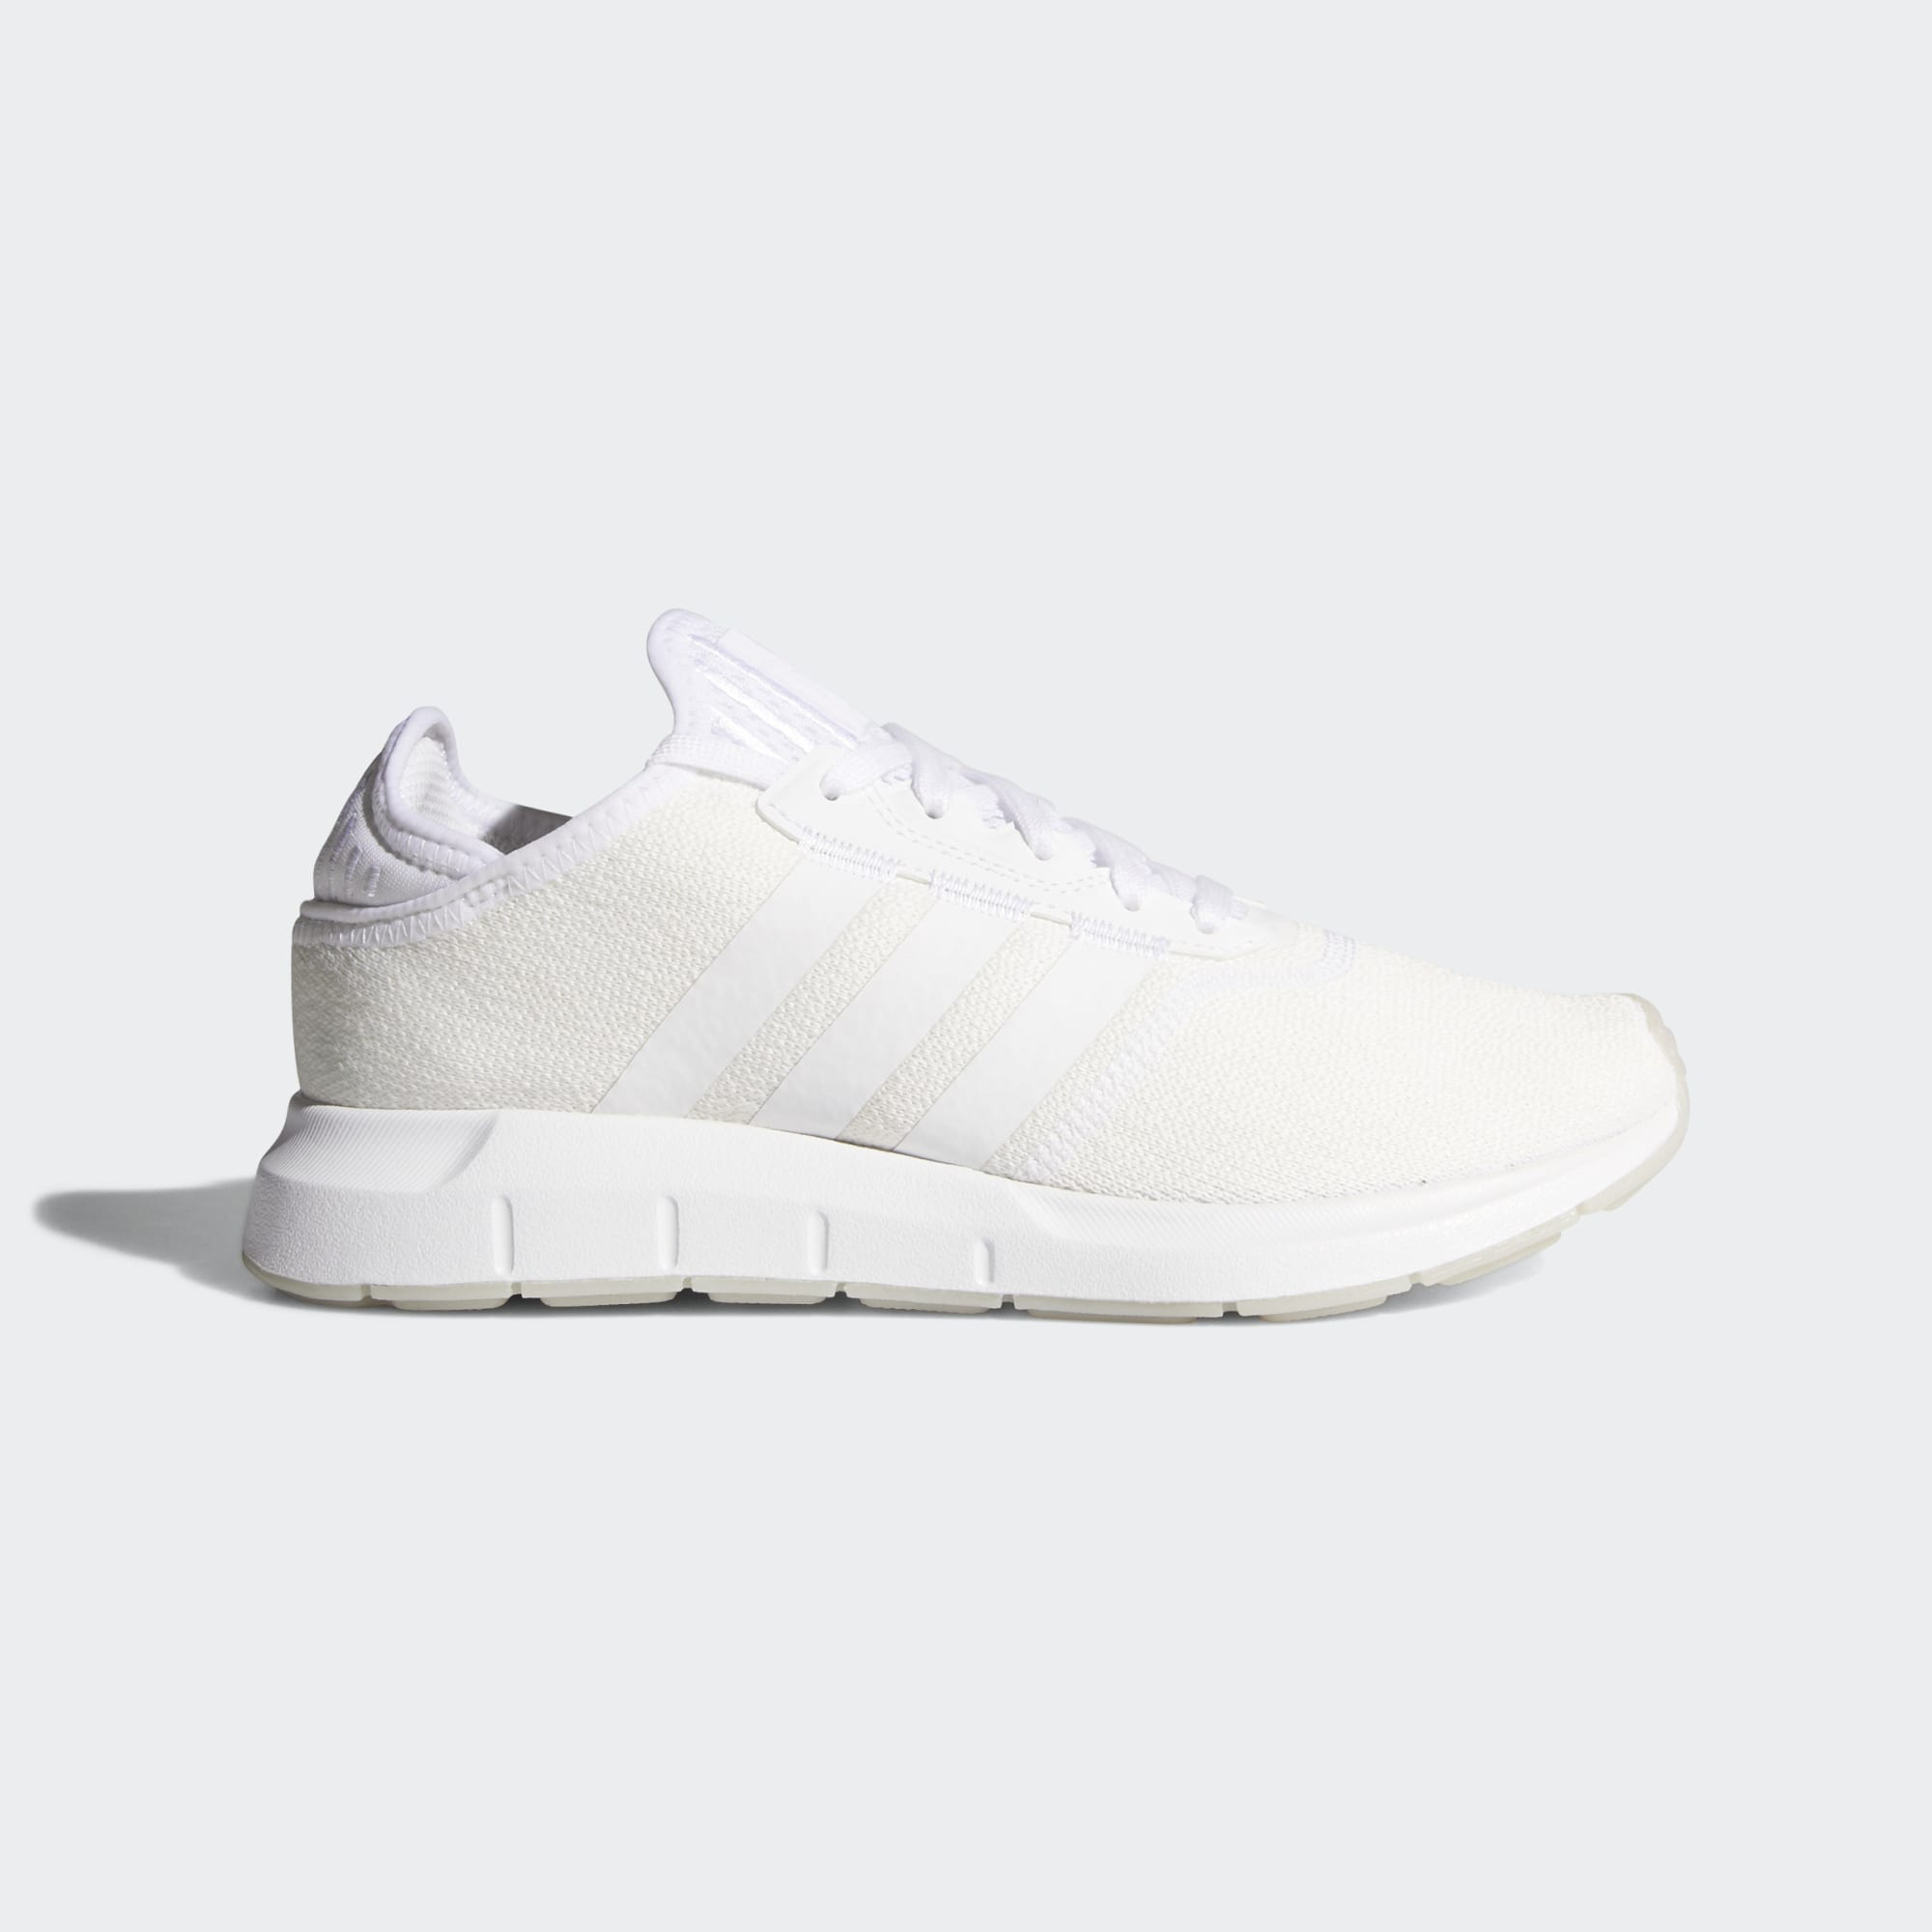 Adidas Womens Swift Run X Shoes - White